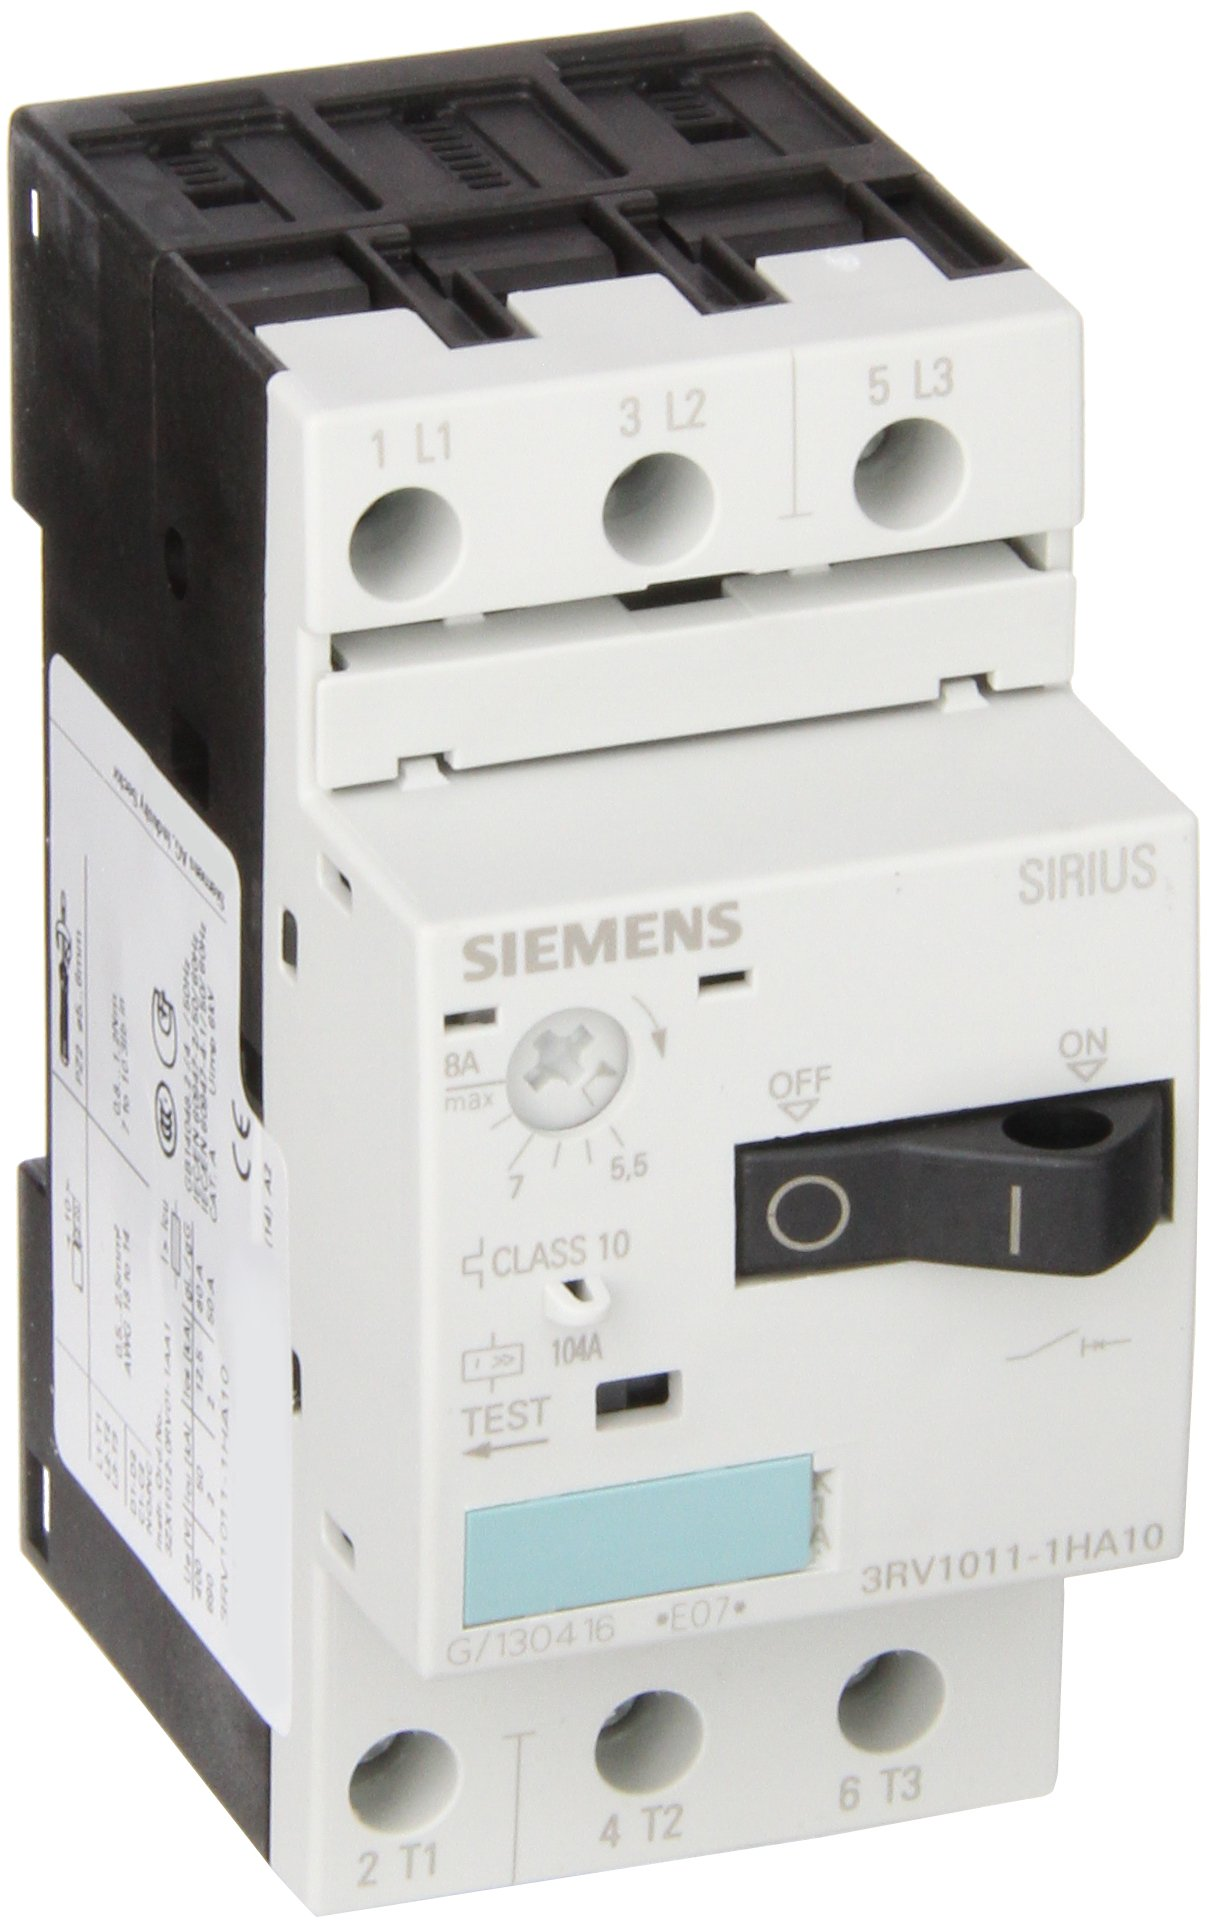 Siemens 3RV1011-1HA10 Motor Starter Protector, Screw Connection, 3RV101 Frame Size, 5.5-8 FLA Adjustment Range, 104A Instantaneous Short Circuit Release, 65kA UL Short Circuit Breaking Capacity at 480V